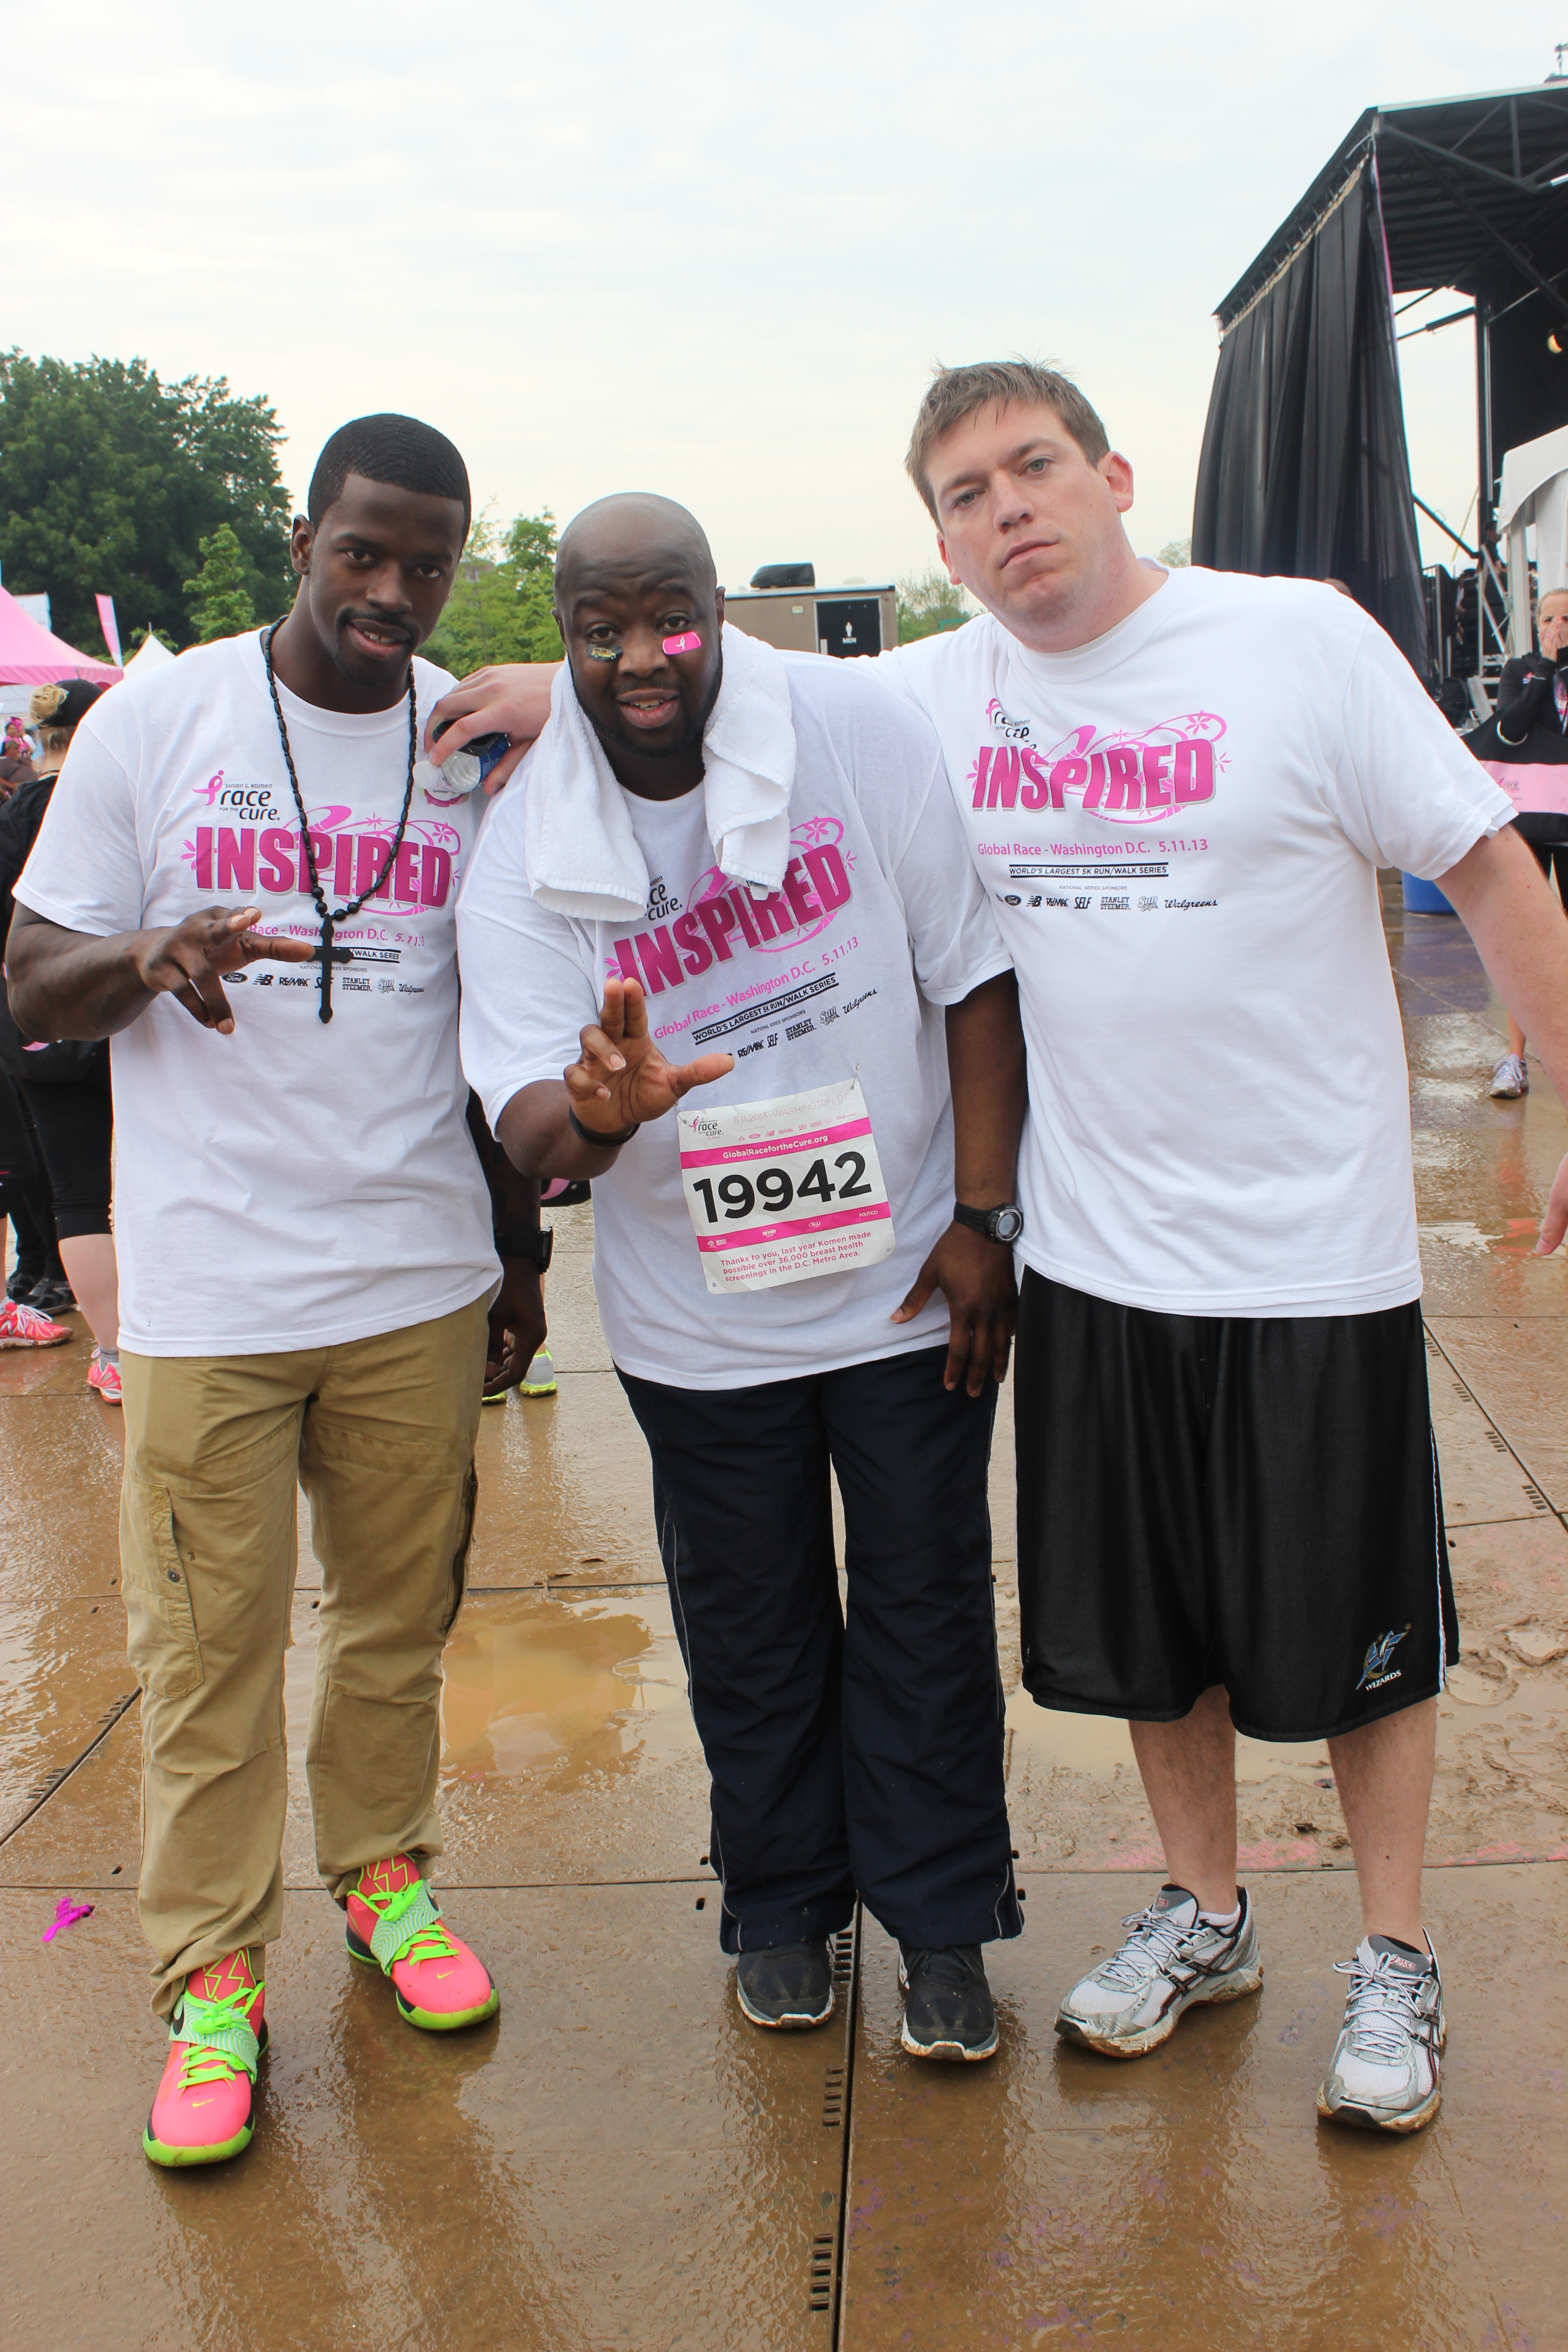 Kicks fresh, even for the Susan G. Komen Race for a Cure DC Day!